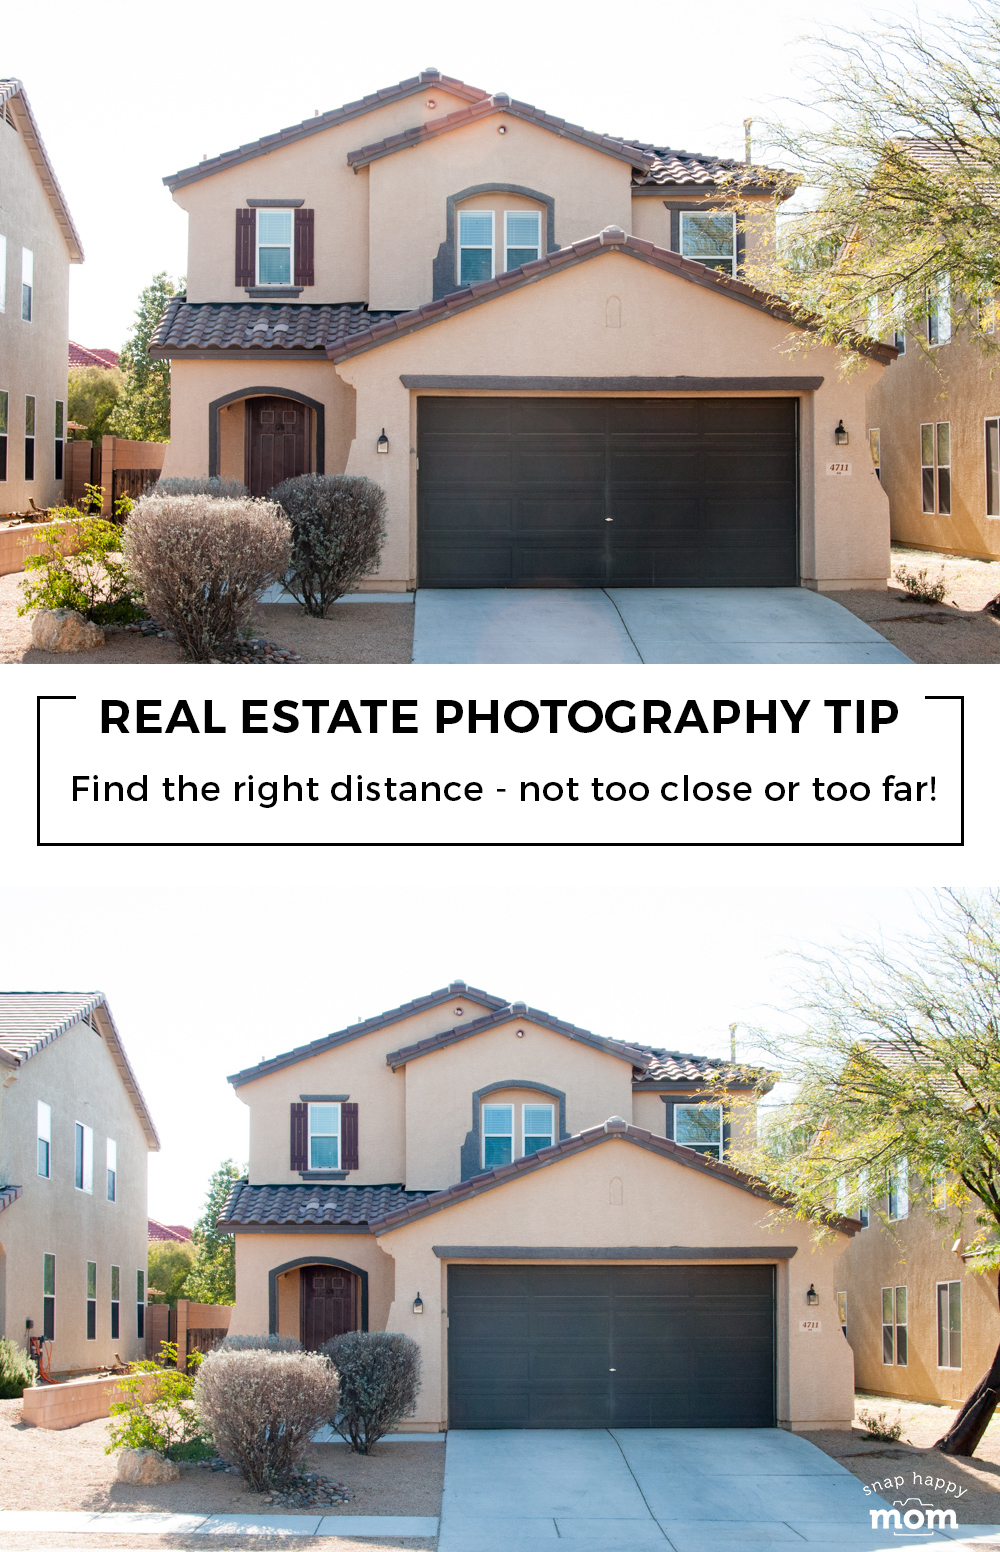 Tips for taking your own real estate photos: Find the right distance for outdoor pictures!